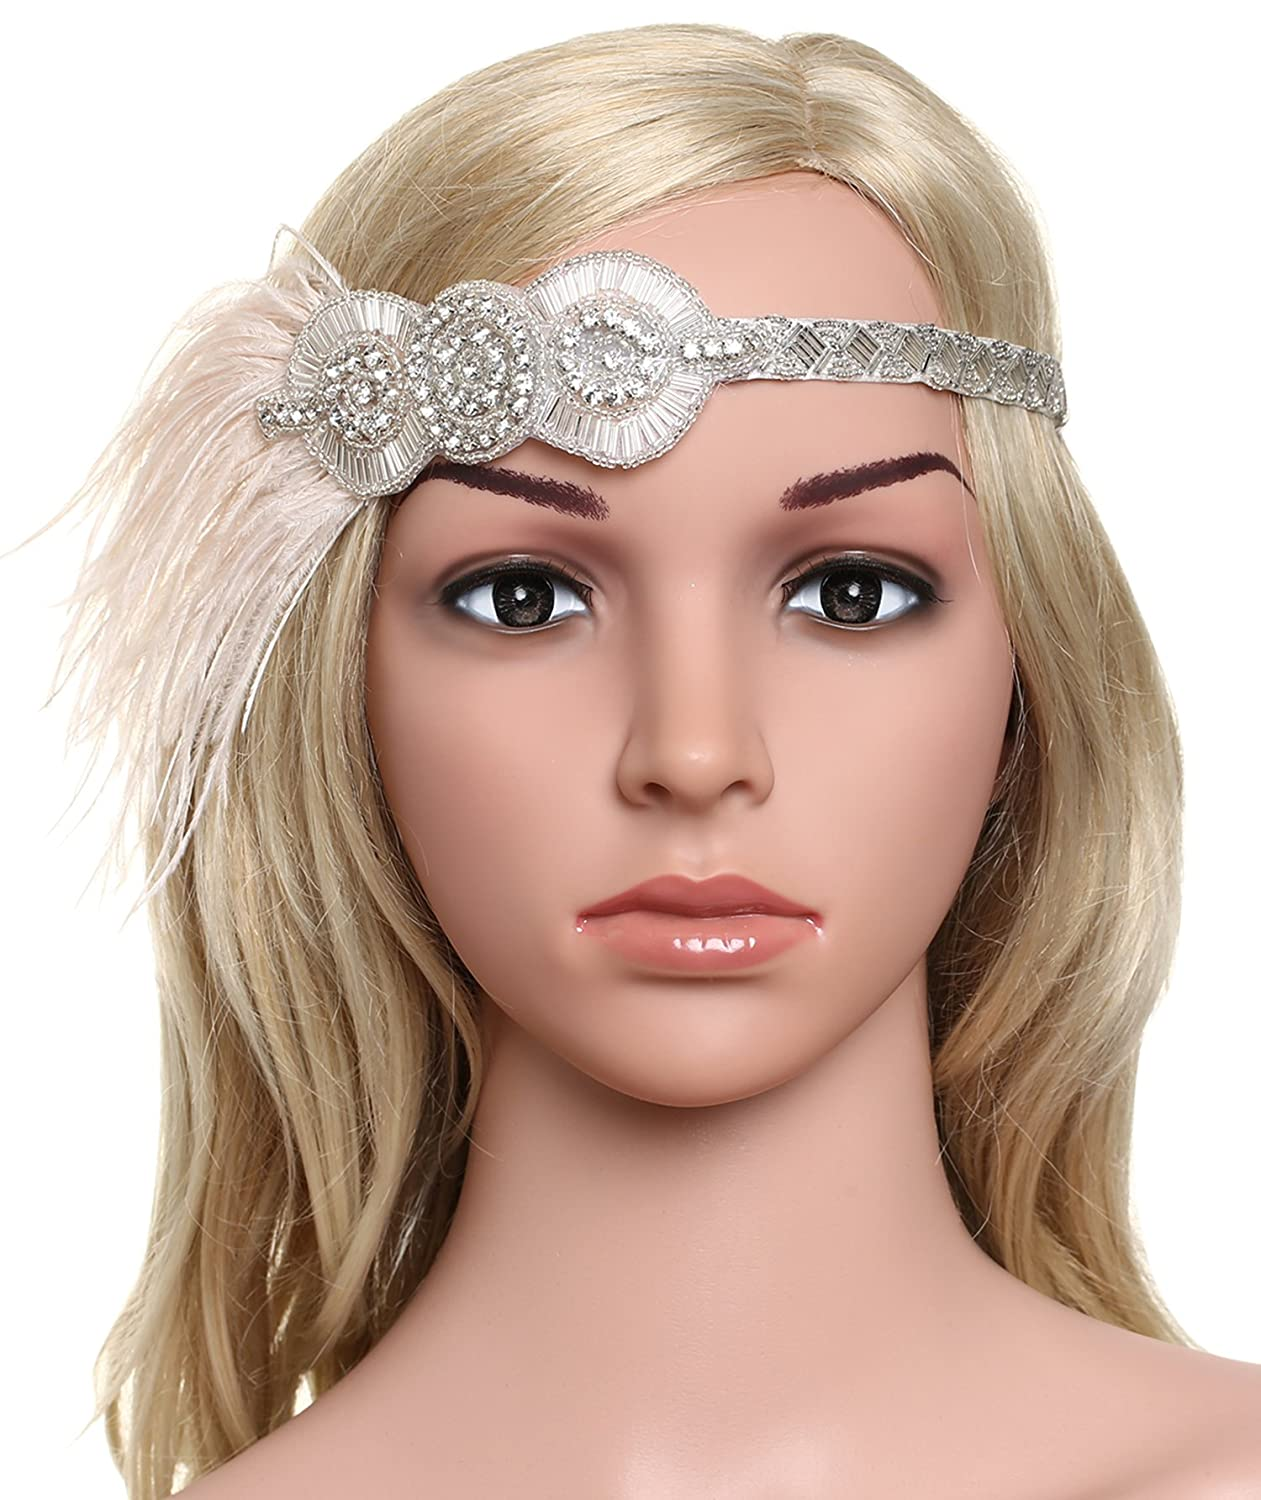 BABEYOND Women's Flapper Hair Band 1920 Headpiece Feather Hair Accessories Vintage Inspired Stunning Crystal Design (Baby pink)